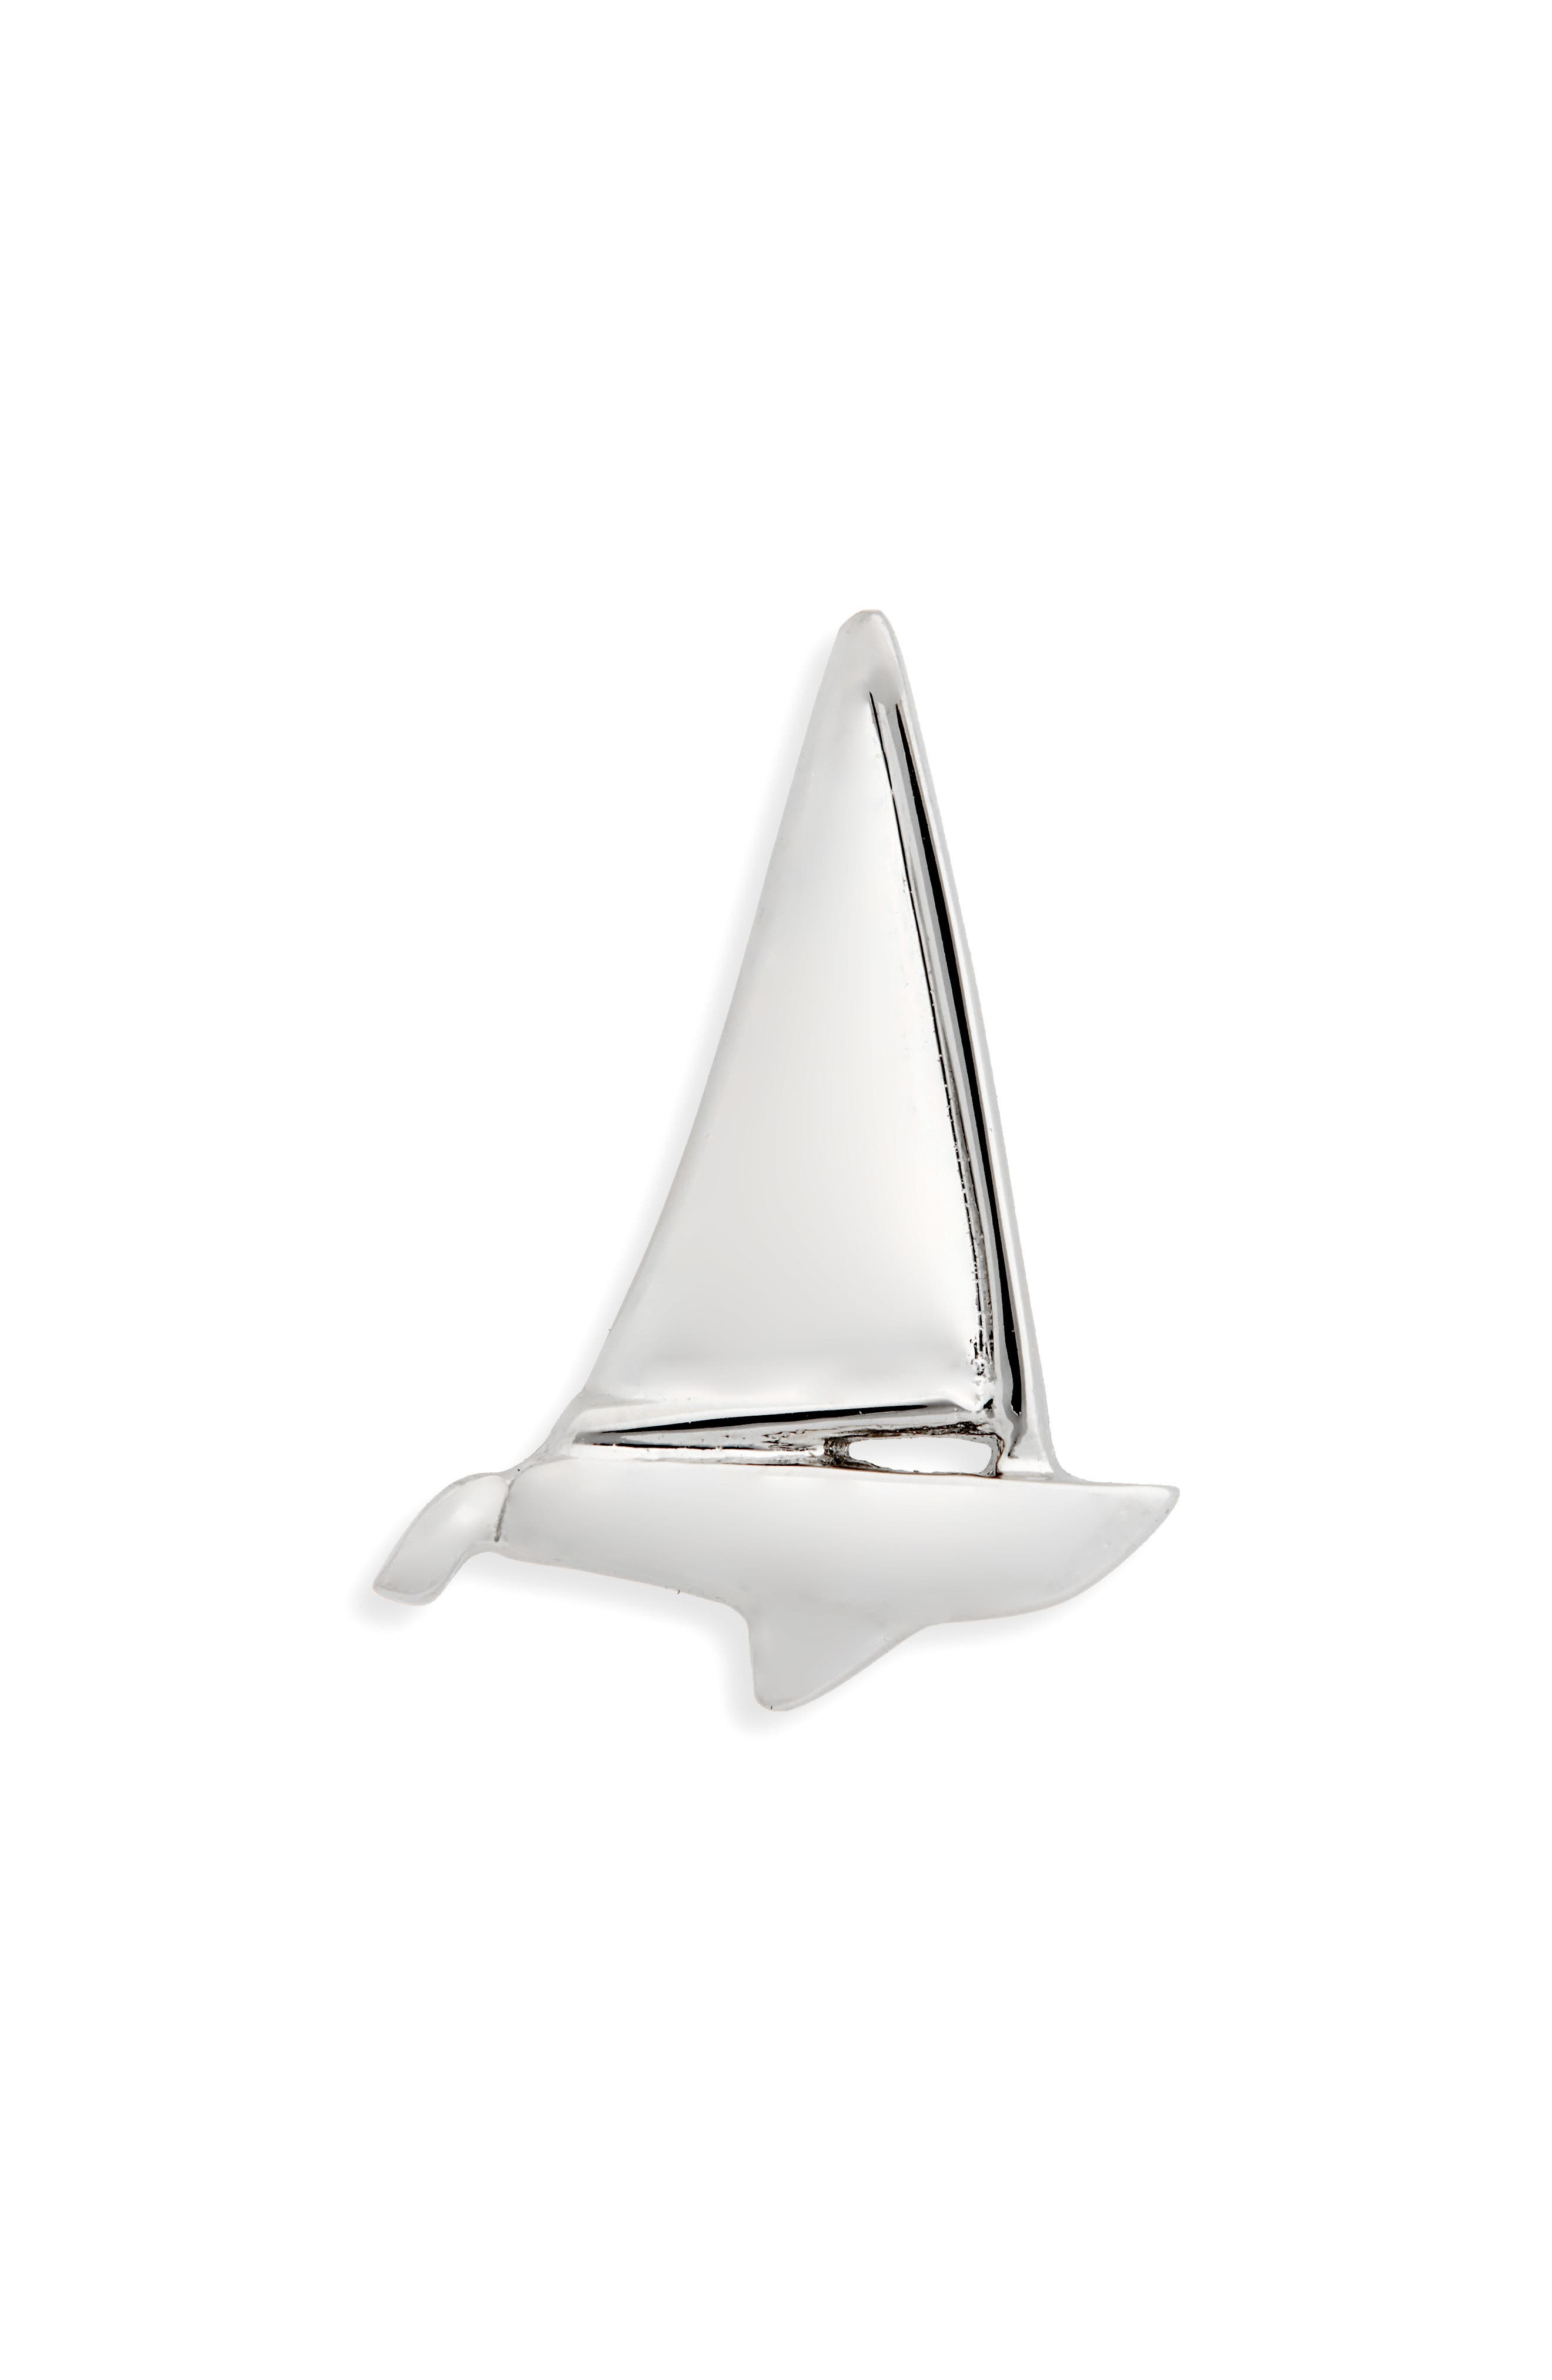 Sailboat Lapel Pin,                         Main,                         color, Silver